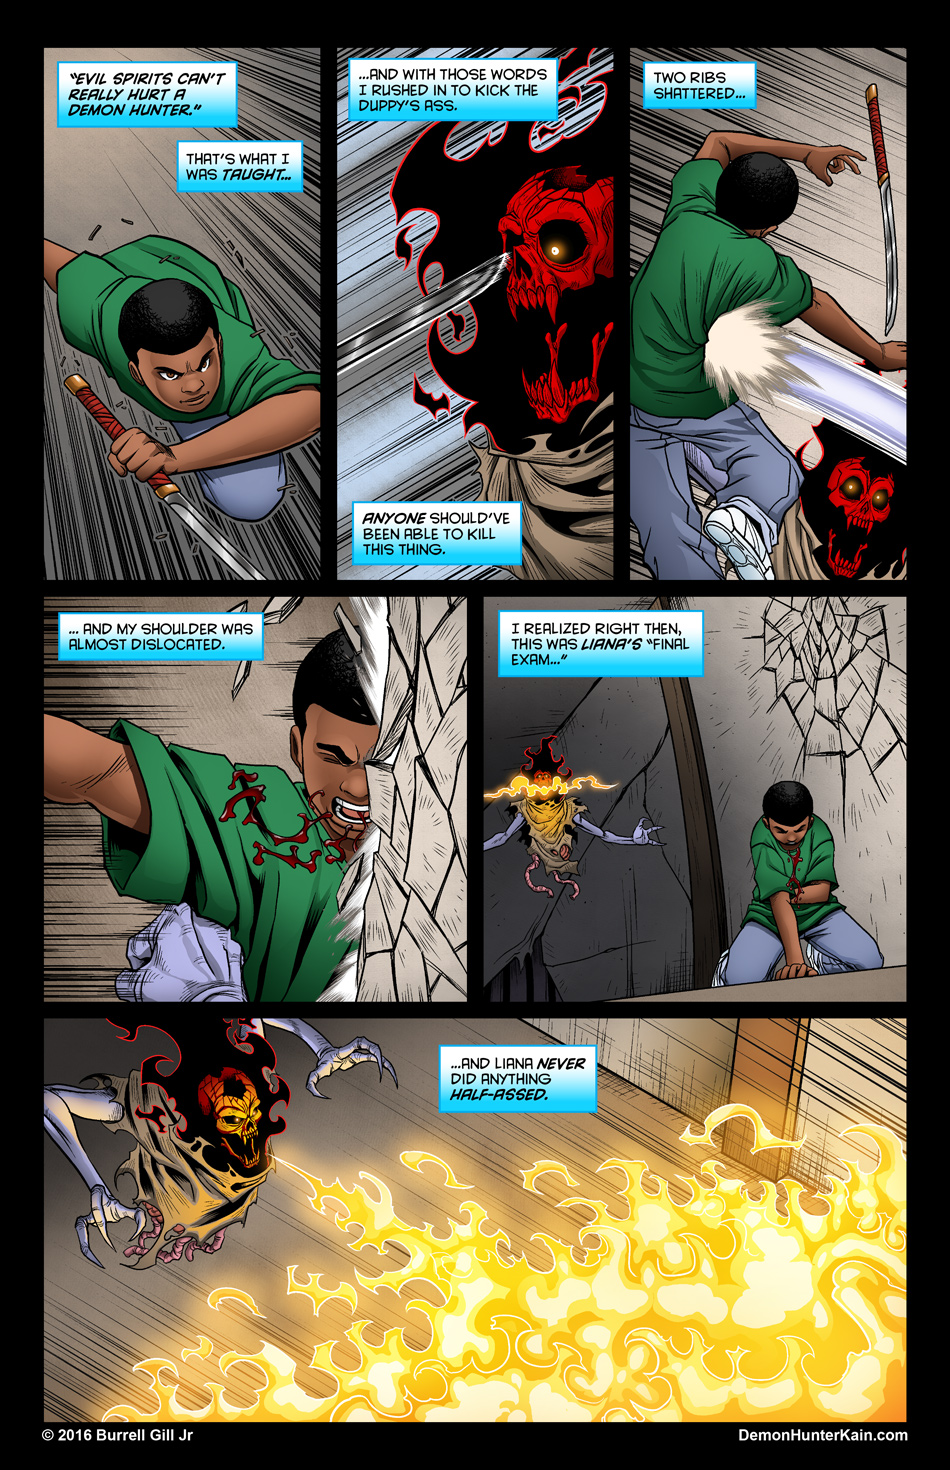 Demon Hunter Kain Chapter 6: The Boy Called Kain, Page 51.